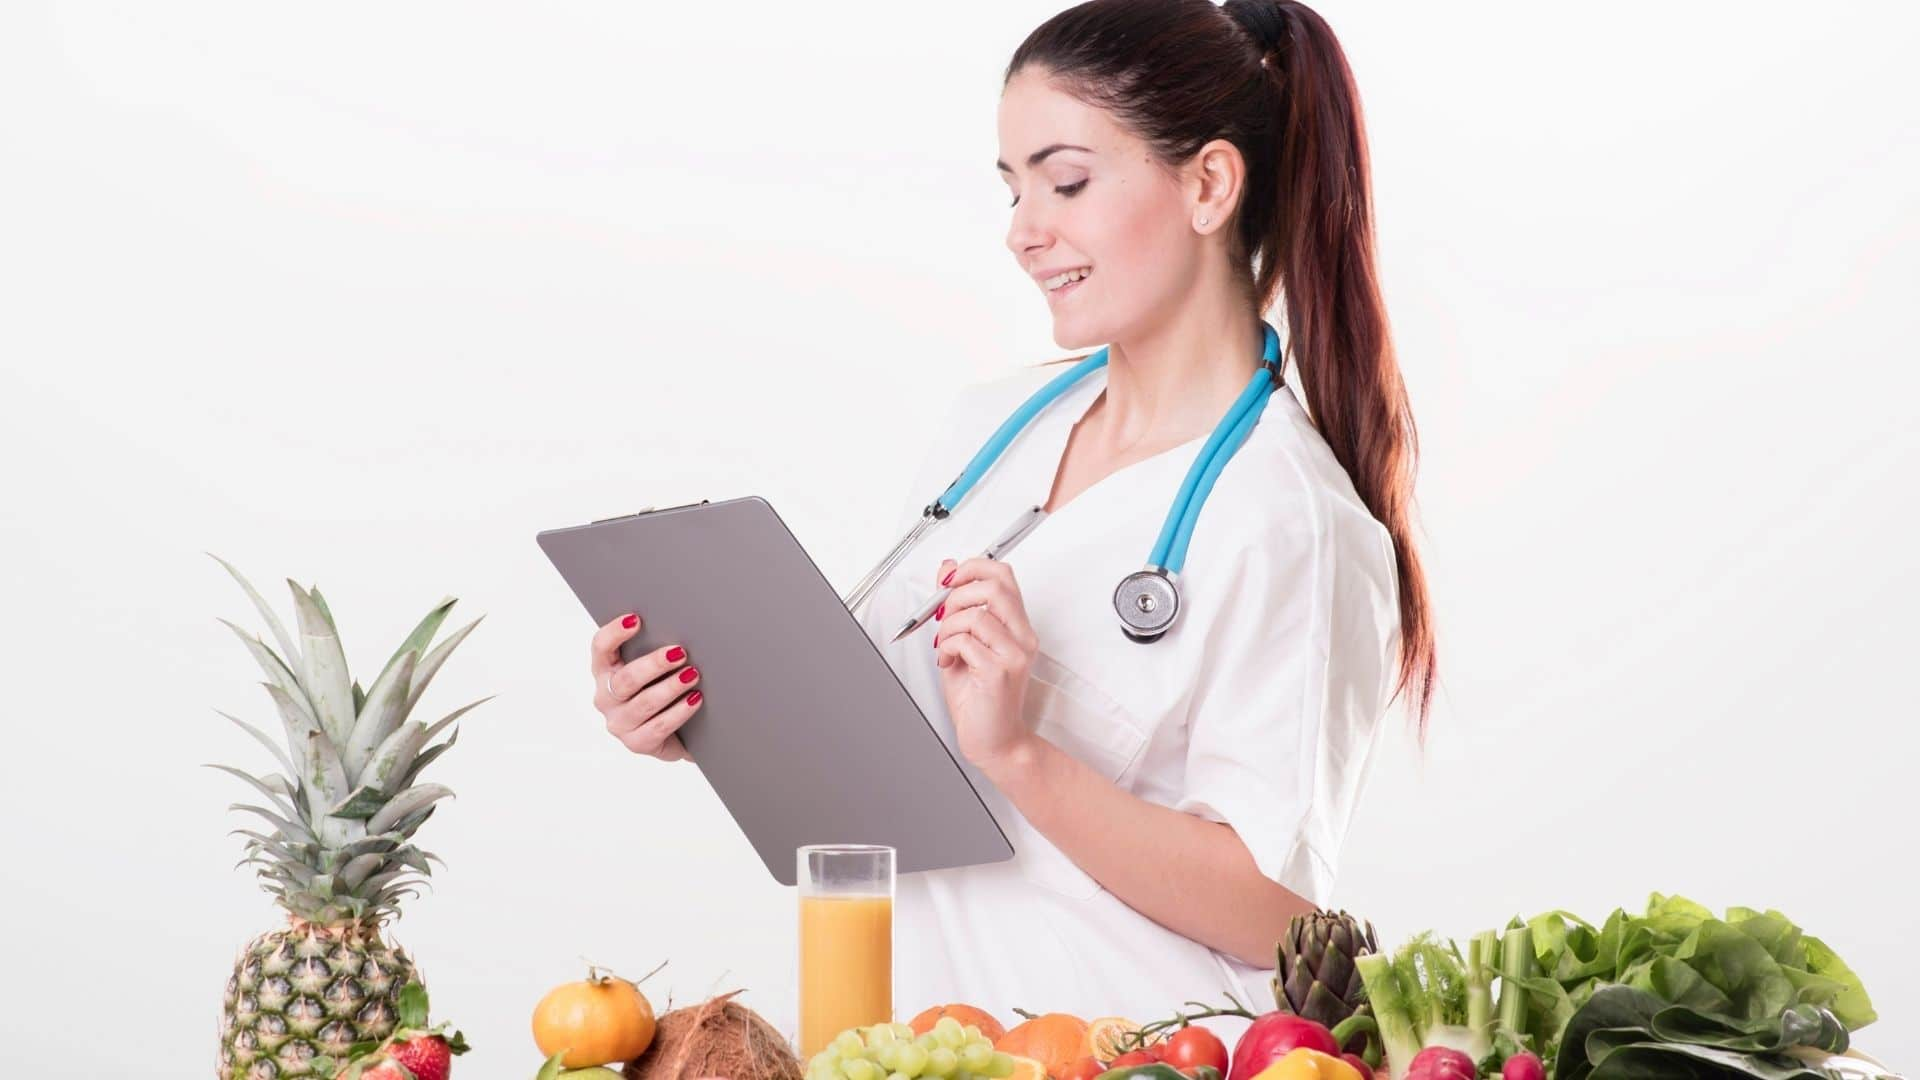 How to become a Registered Dietitian